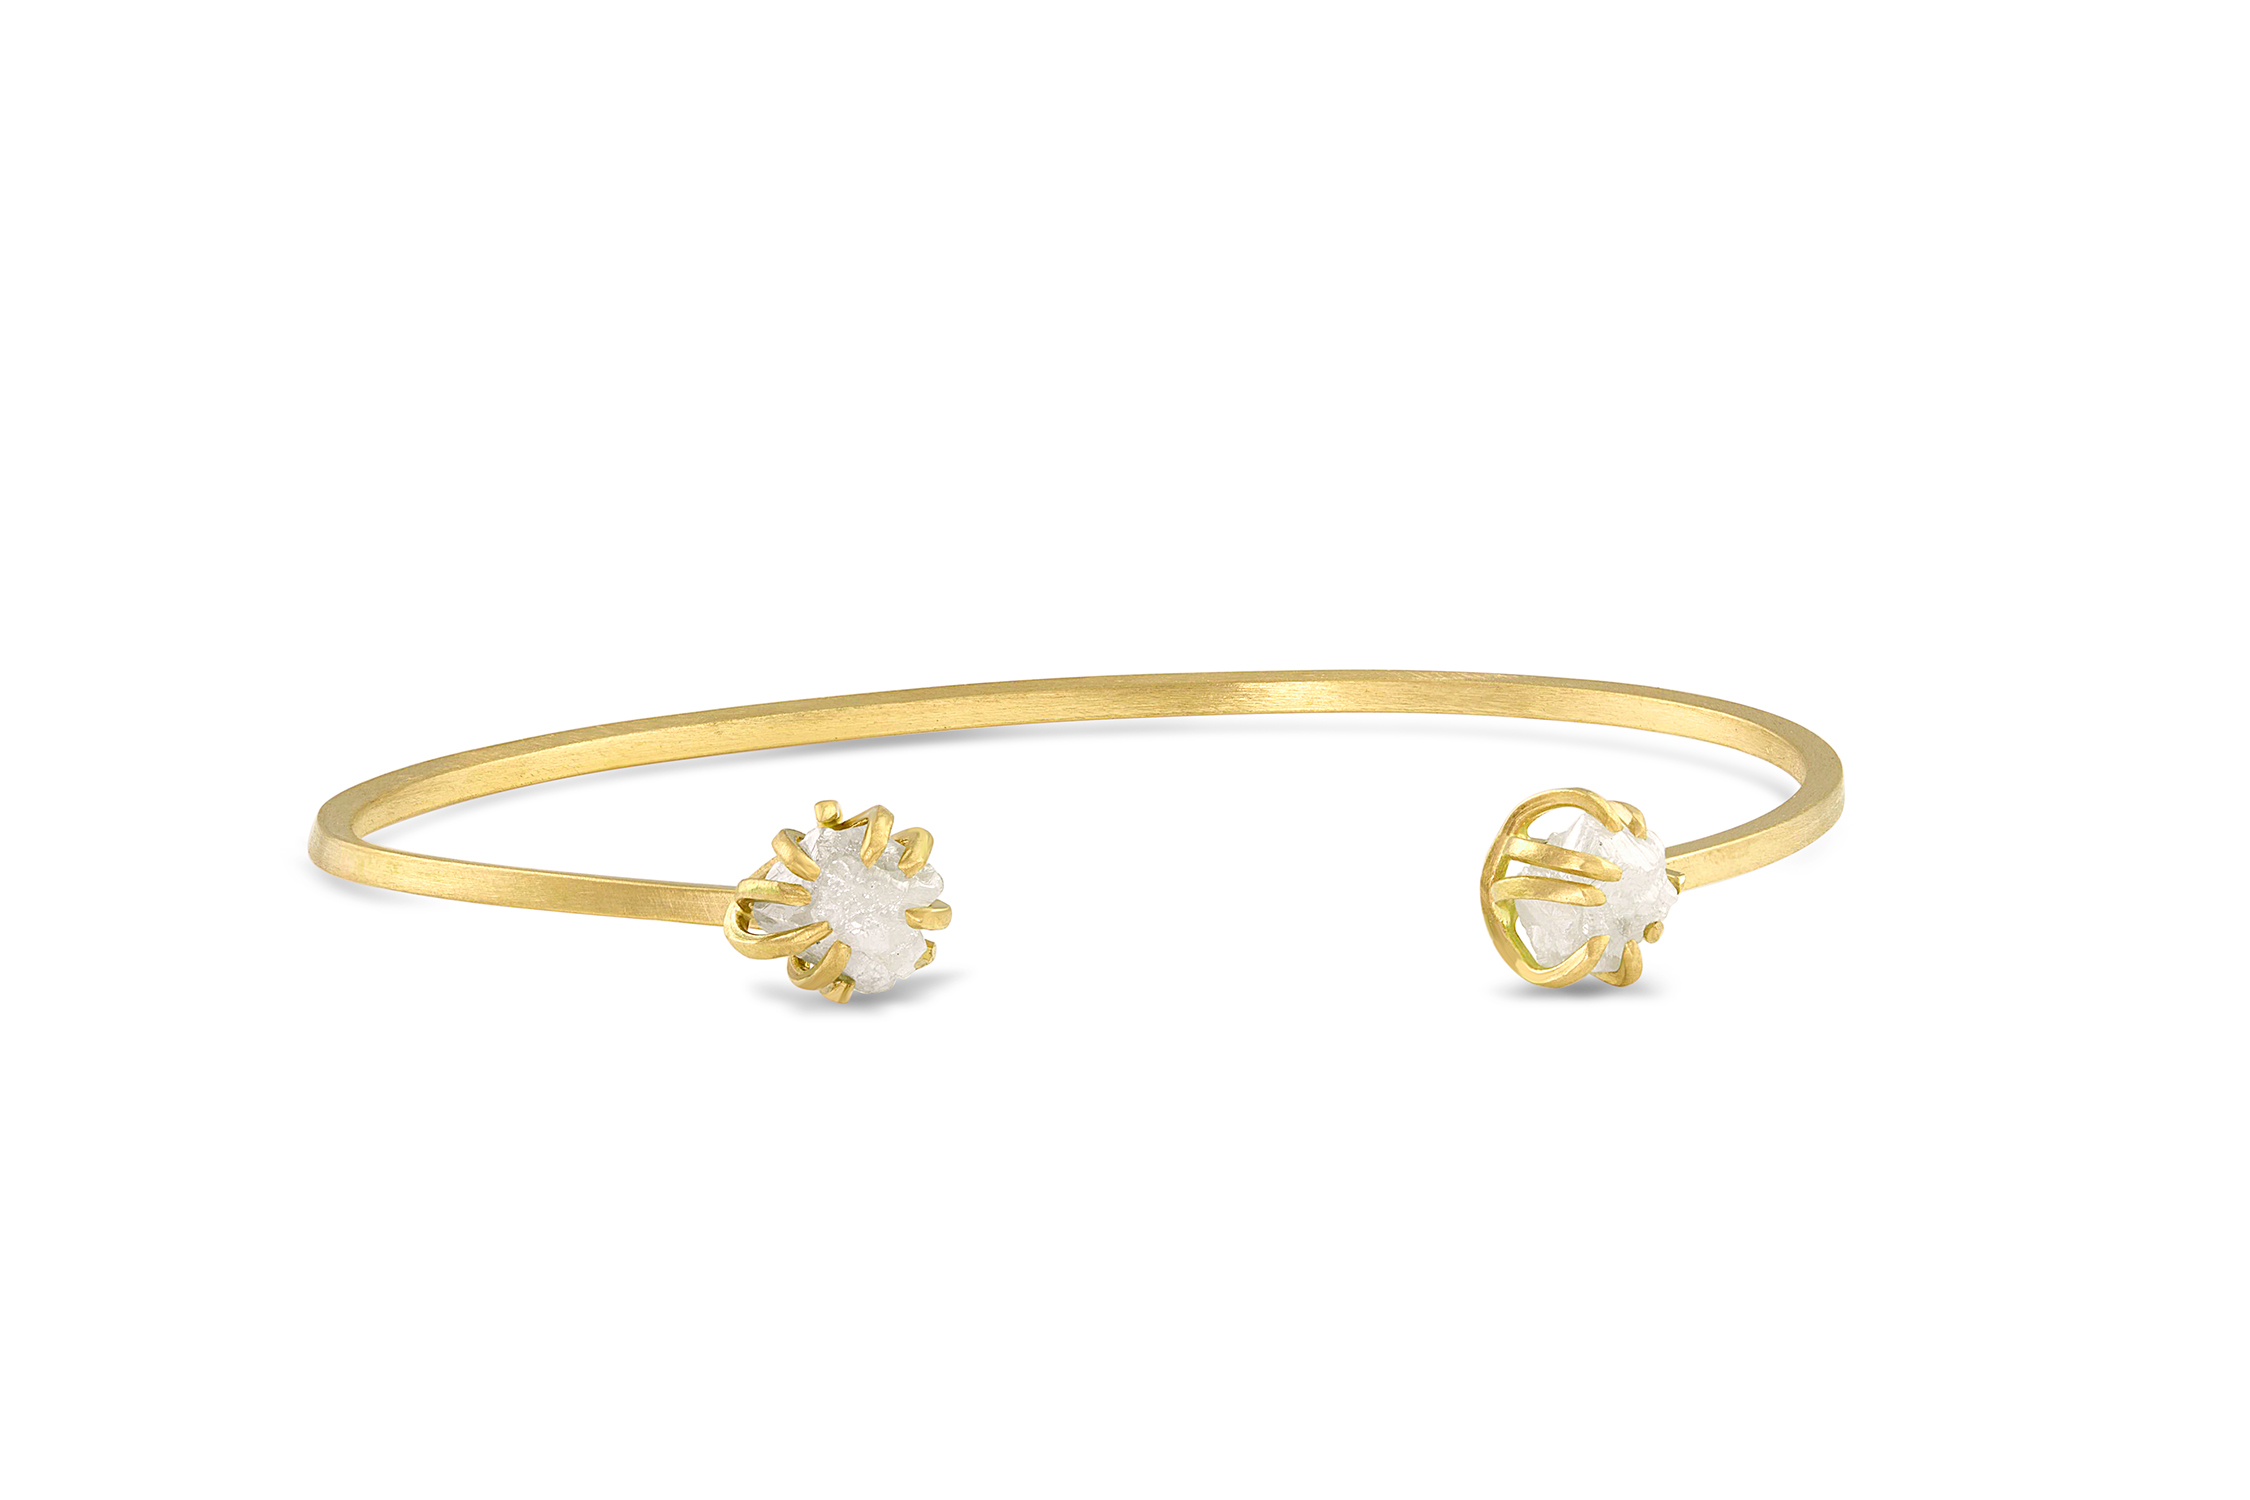 GOLD AND ROUGH DIAMOND BRACELET